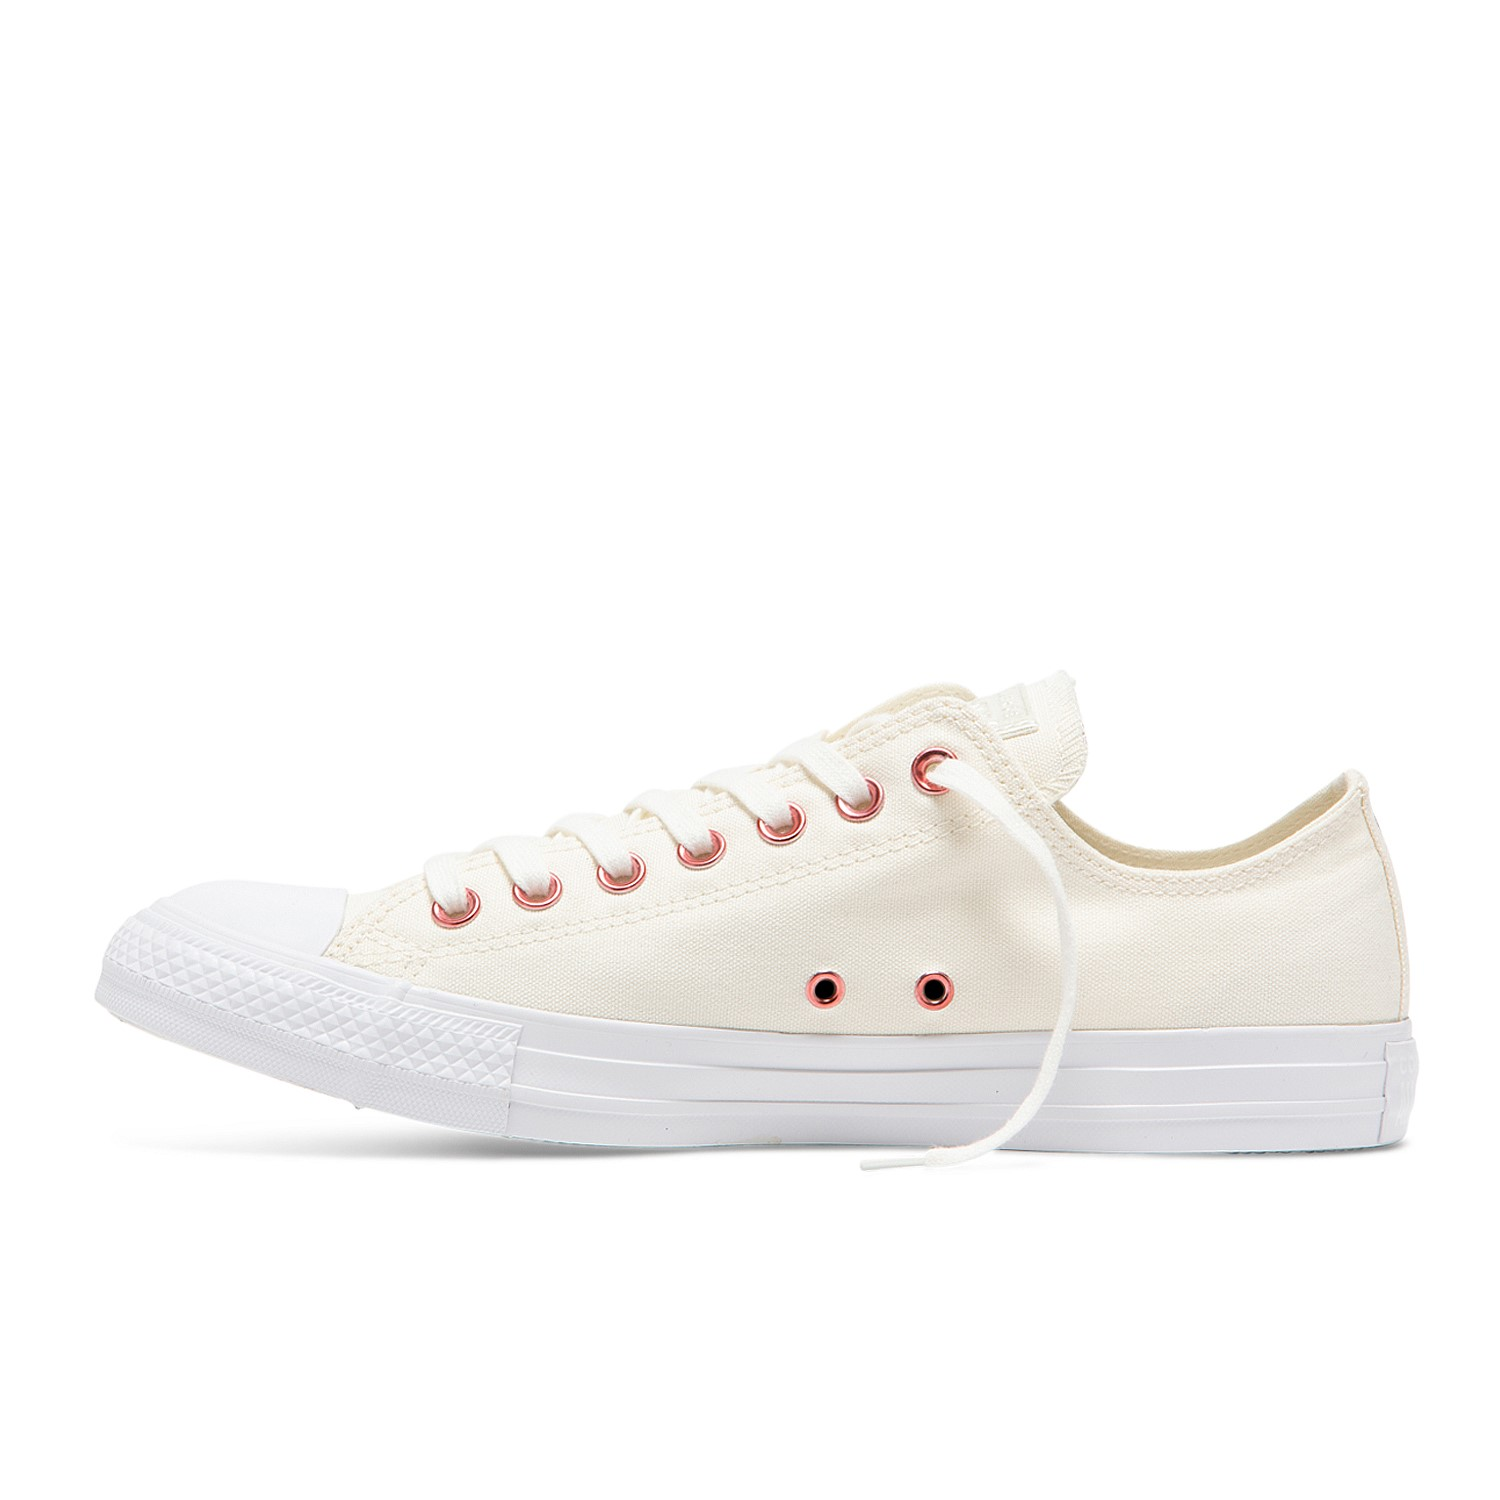 35fdf0d50c12 Sneakers are Forever - Chuck Taylor All Star Hearts Low Unisex